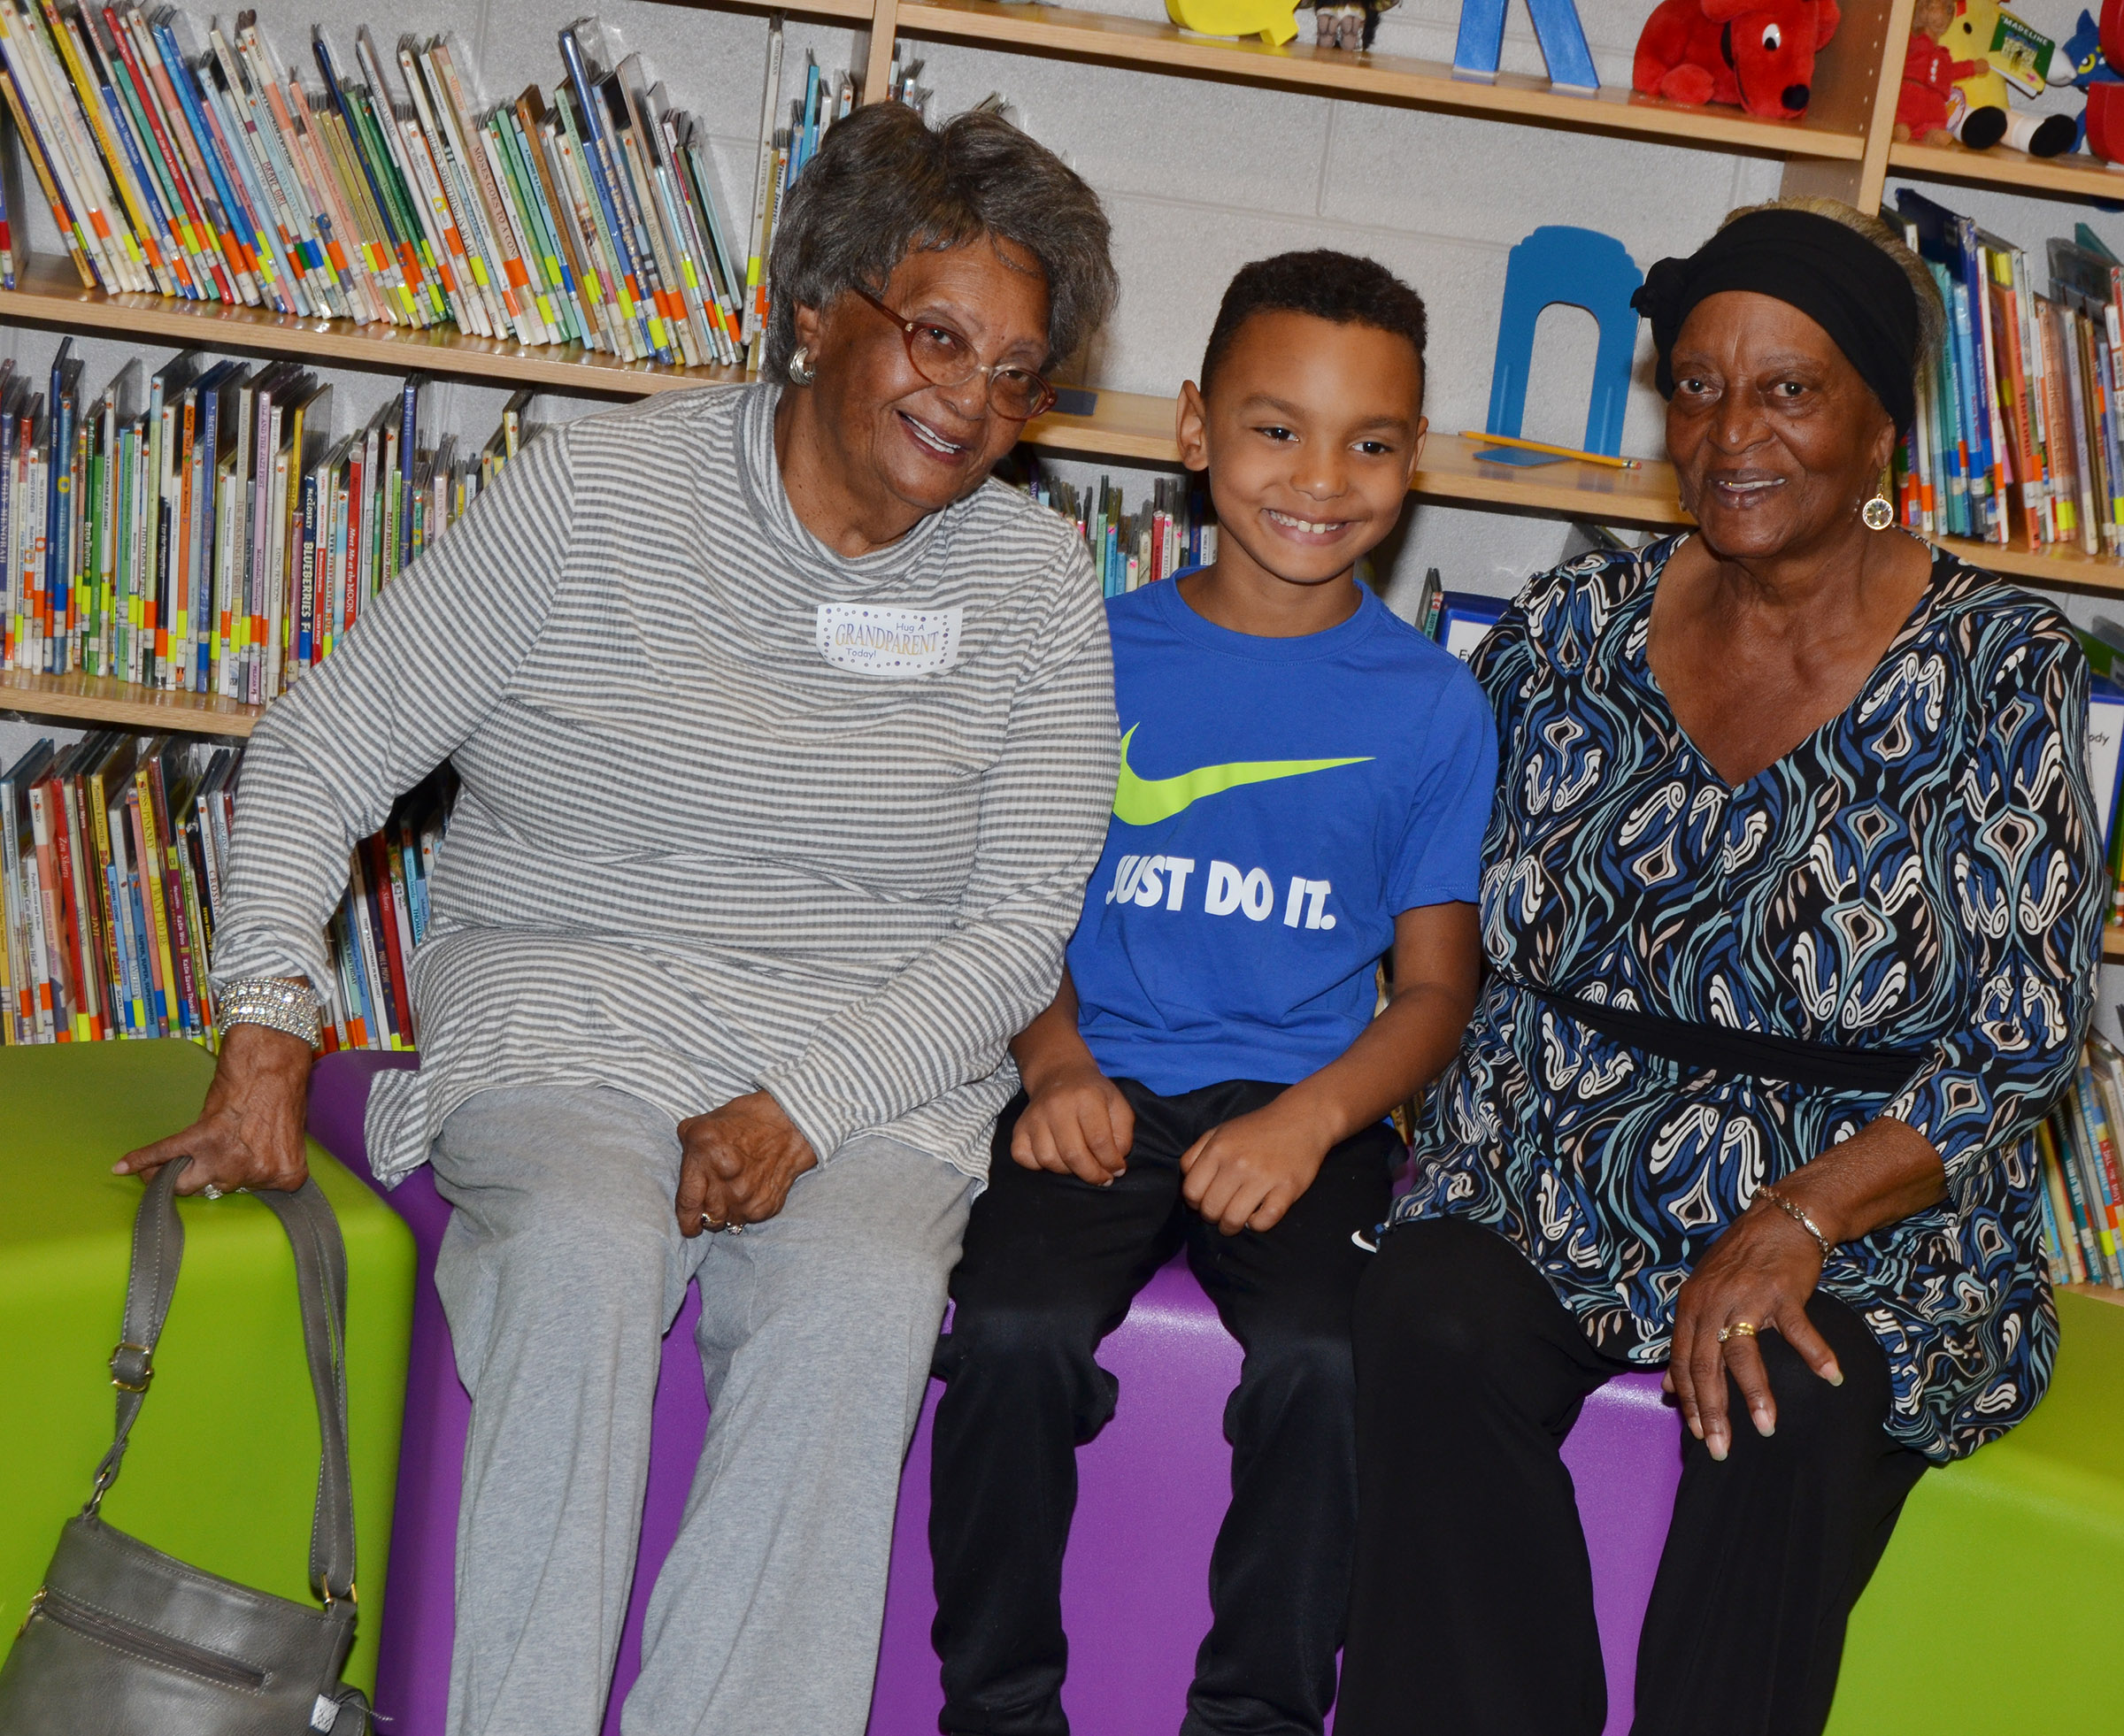 CES third-grader Maddox Hawkins poses for a photo with his grandmothers.